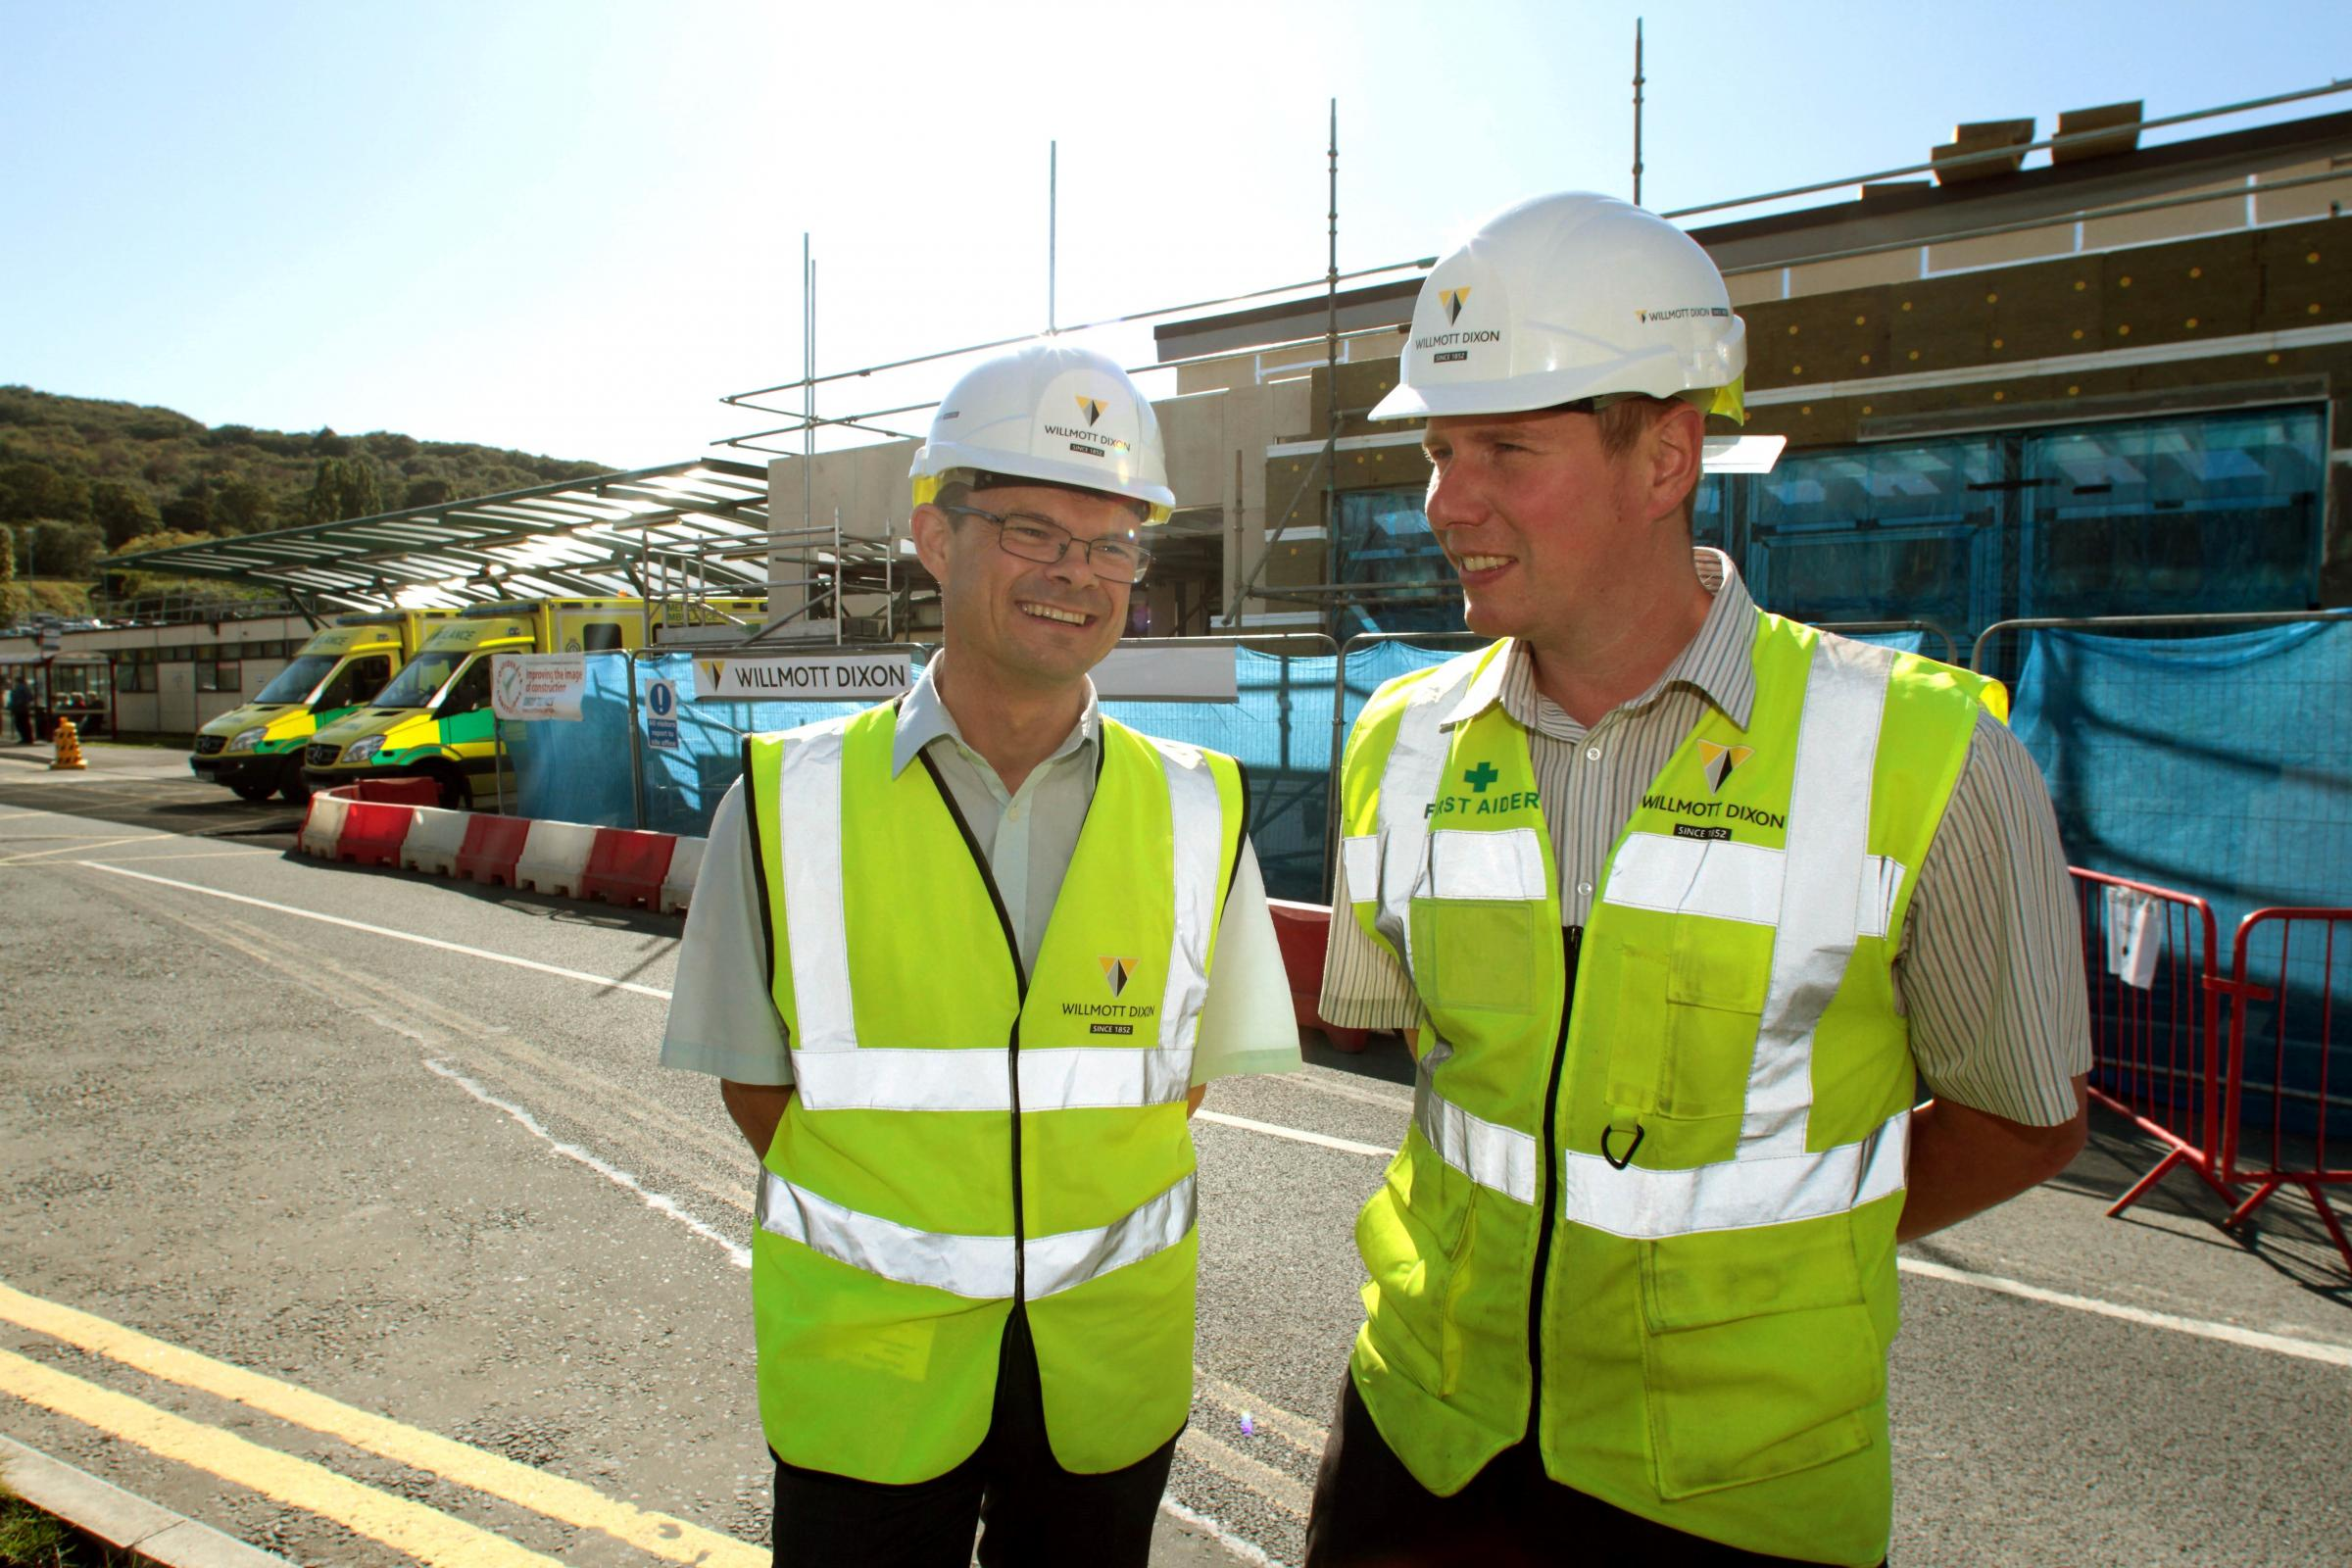 Work on new £6.3m Airedale Hospital Emergency Department on schedule